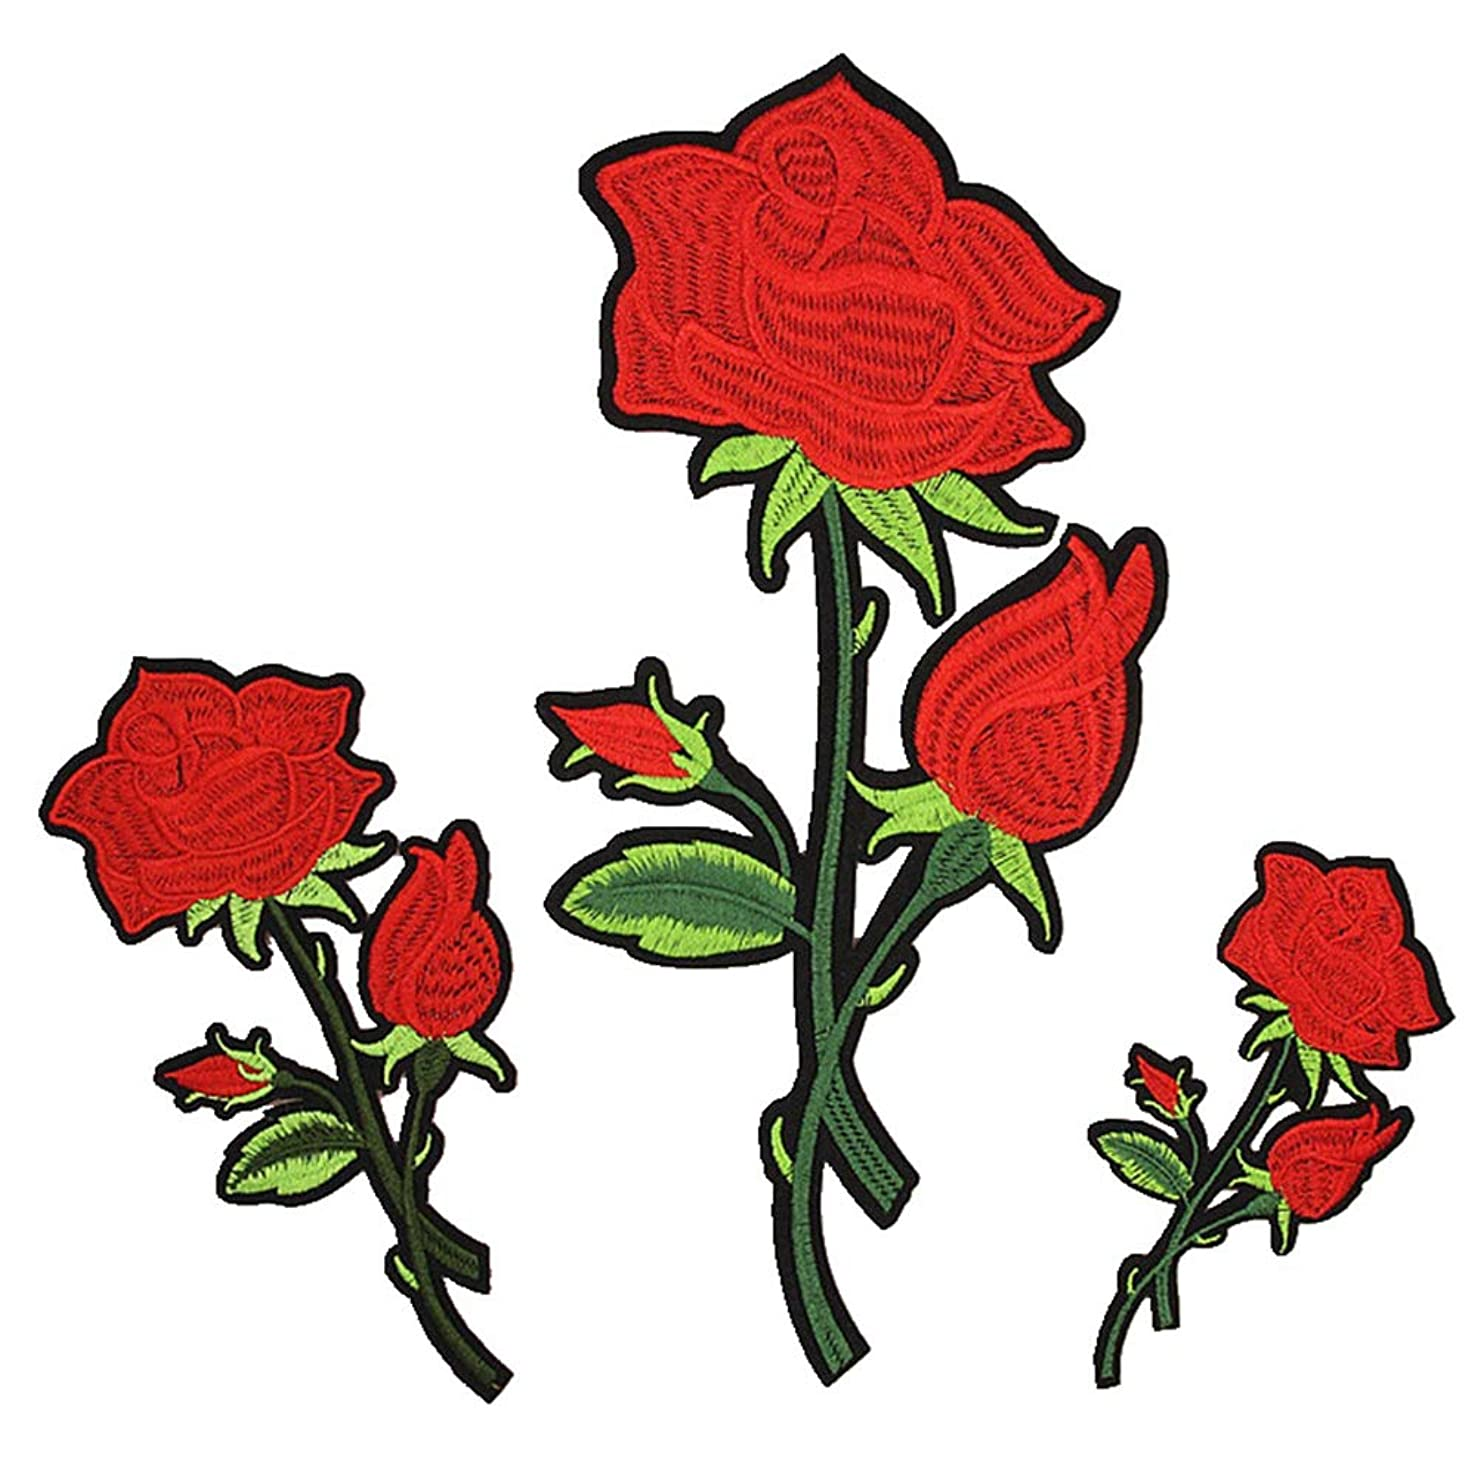 Embroidery Rose Flower Lace Fabric Applique Iron on Patches Embroidered Patch DIY for Clothings,Jeans,Dress,Bag,Curtain (Set of 3)